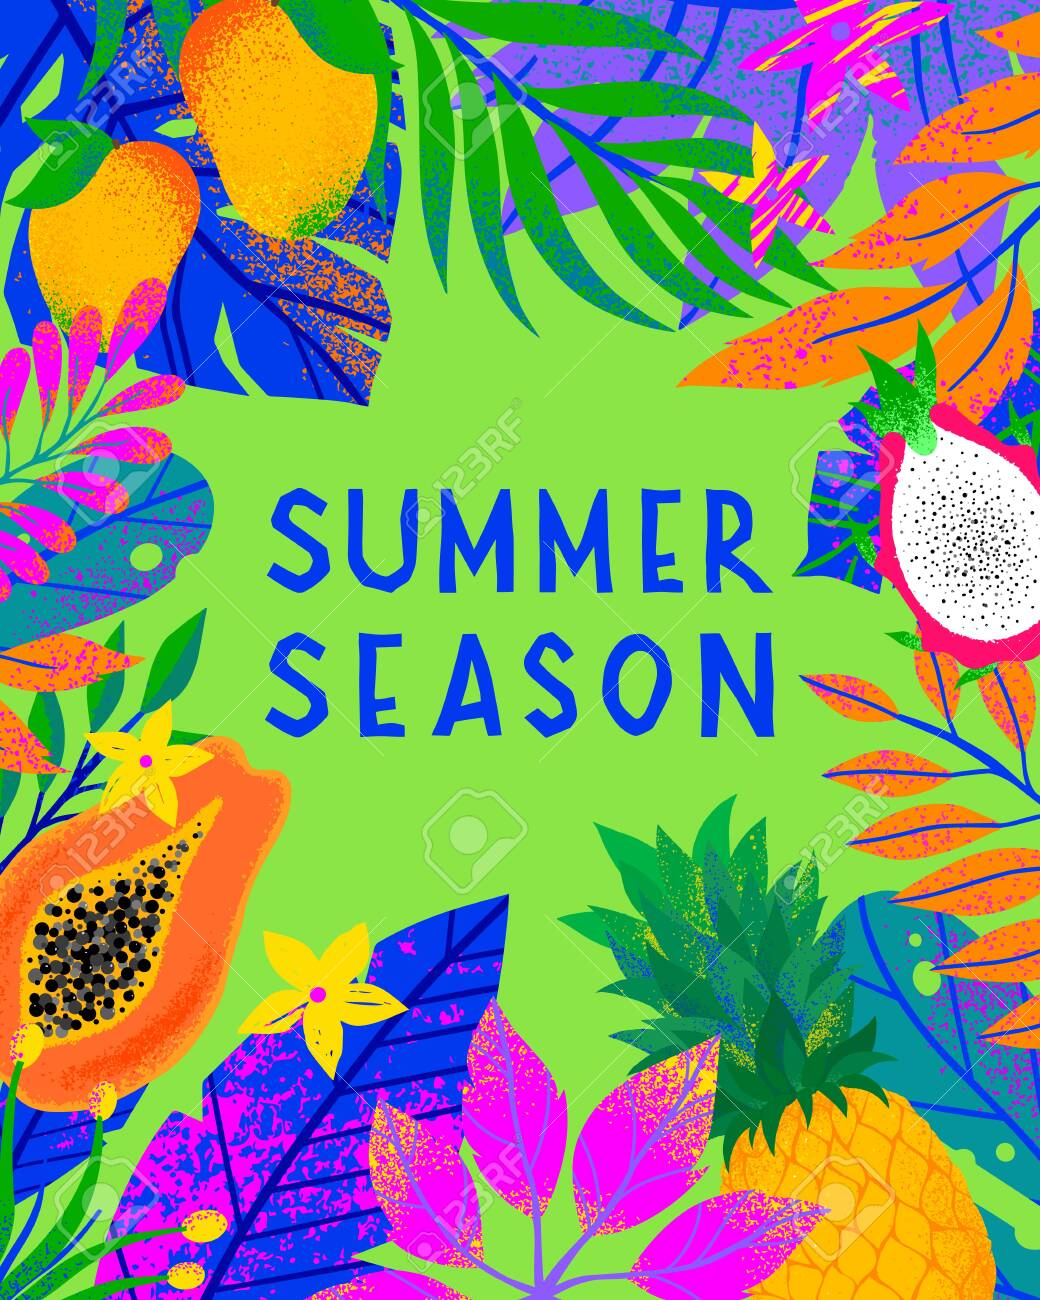 Summer vector illustration with bright tropical leaves,exotic fruits and flowers.Multicolor plants with hand drawn texture.Exotic background perfect for prints,flyers,banners,invitations,social media. - 128360833